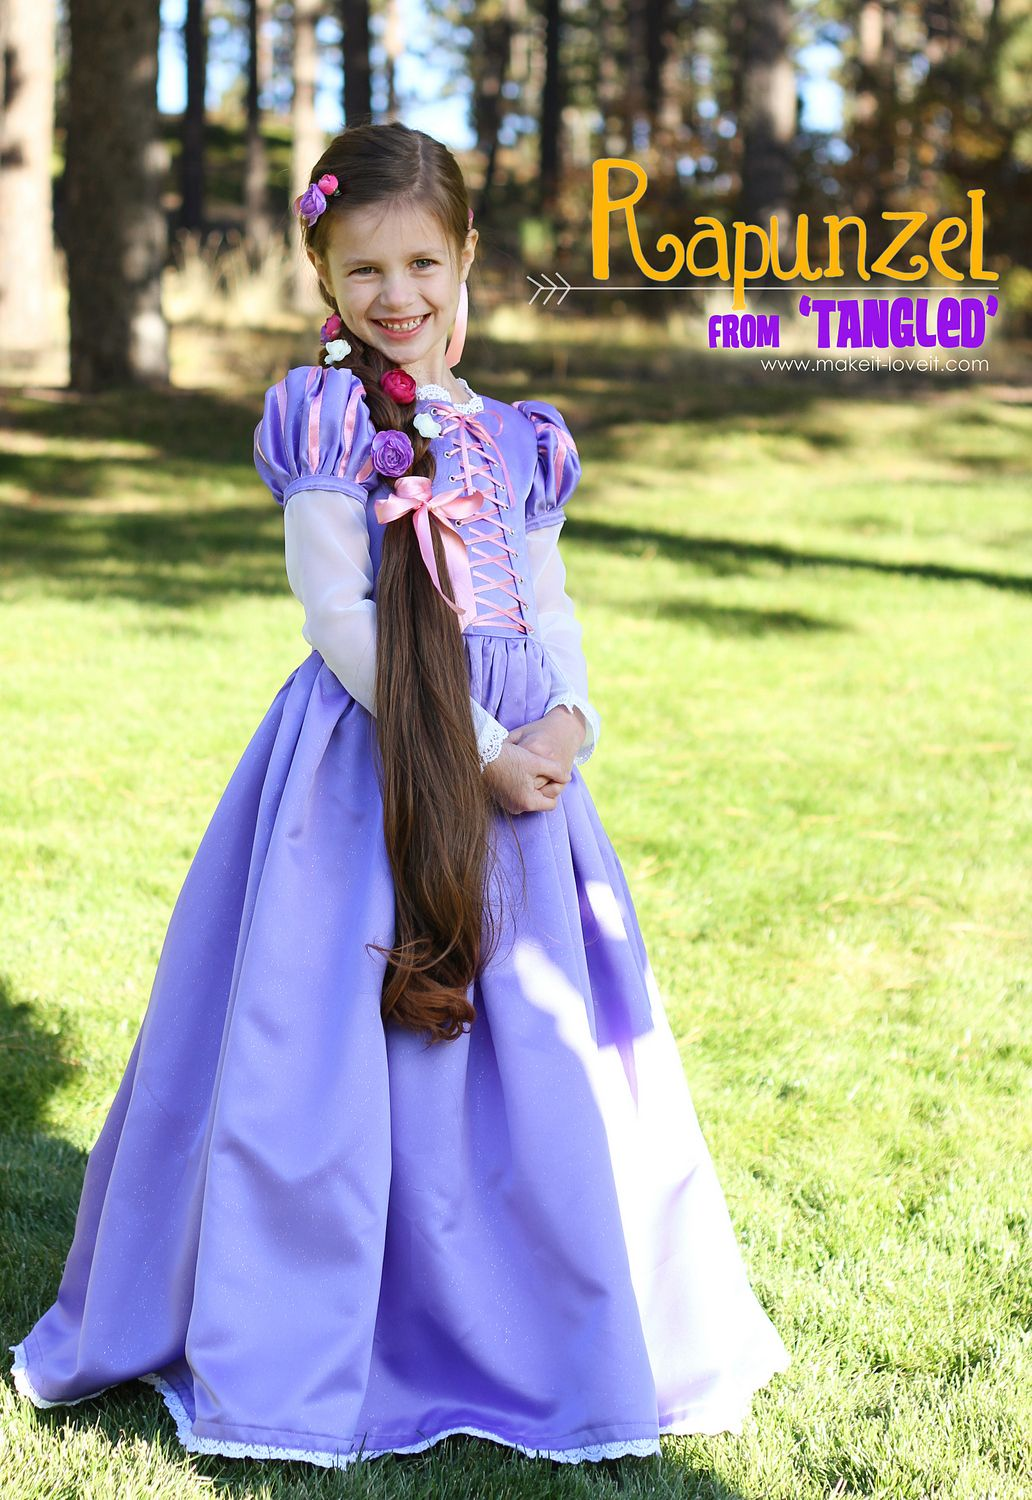 Halloween Costumes 2013 Rapunzel From Tangled Rapunzel Costume Princess Halloween Costume Rapunzel Dress